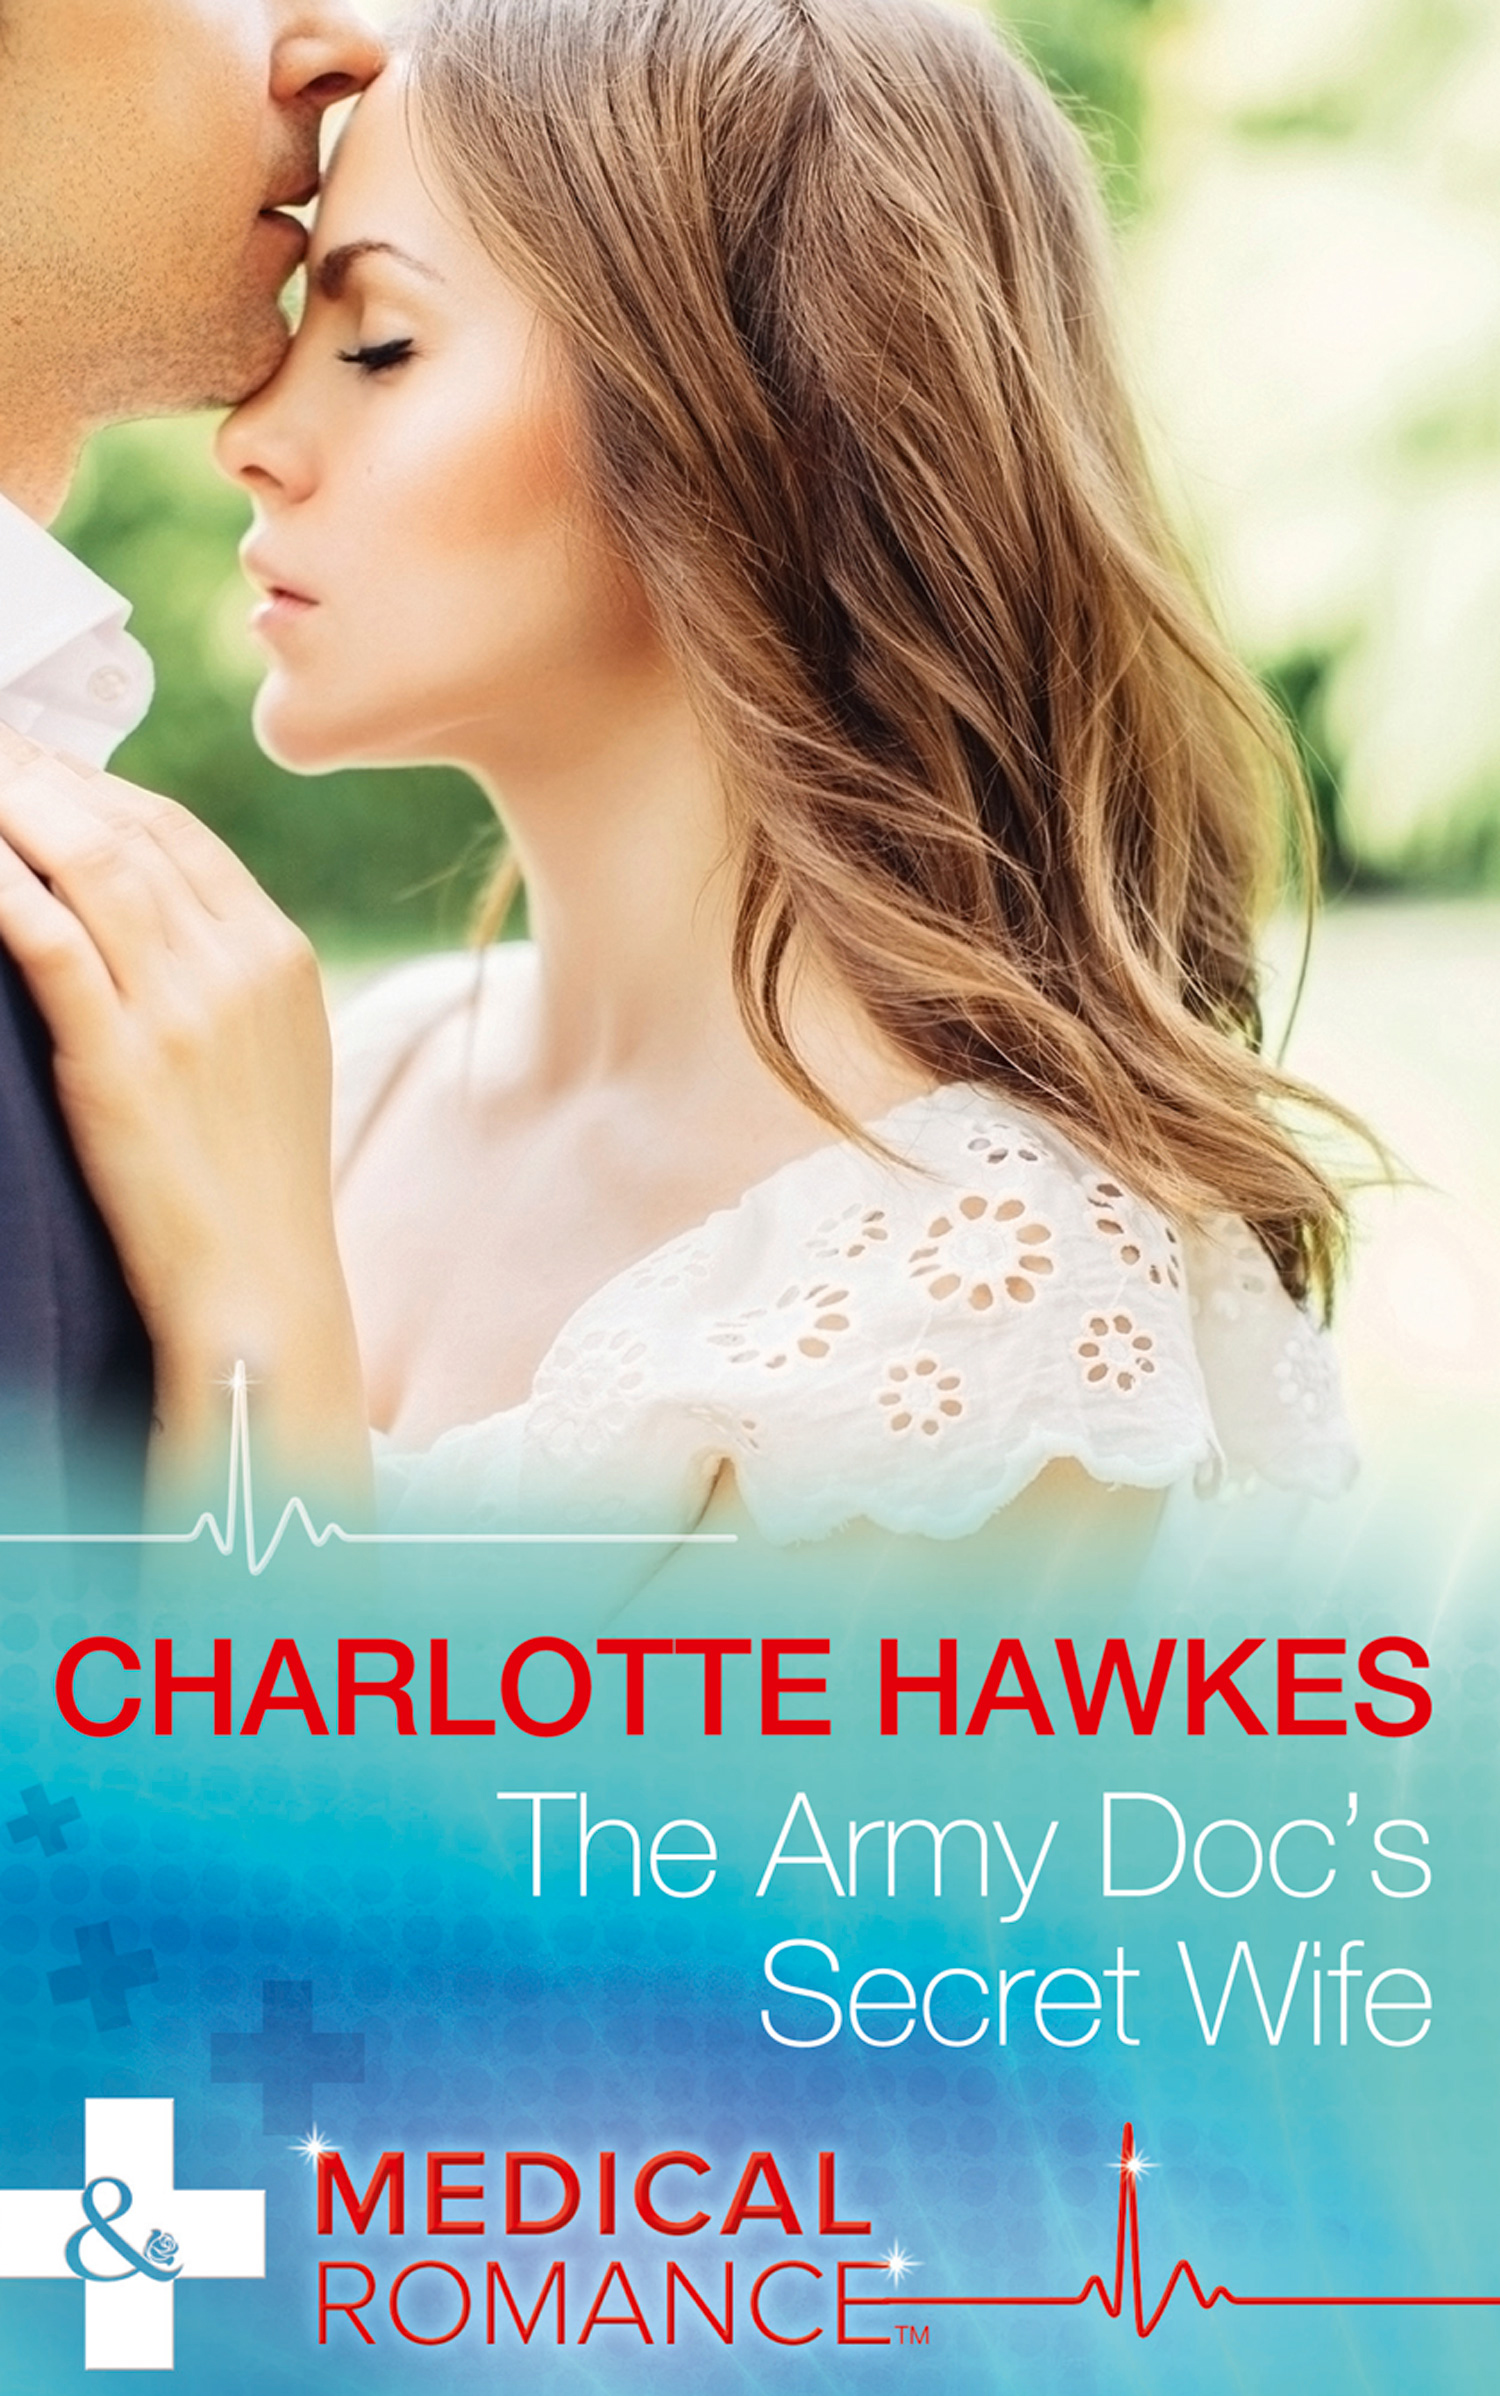 The Army Doc's Secret Wife